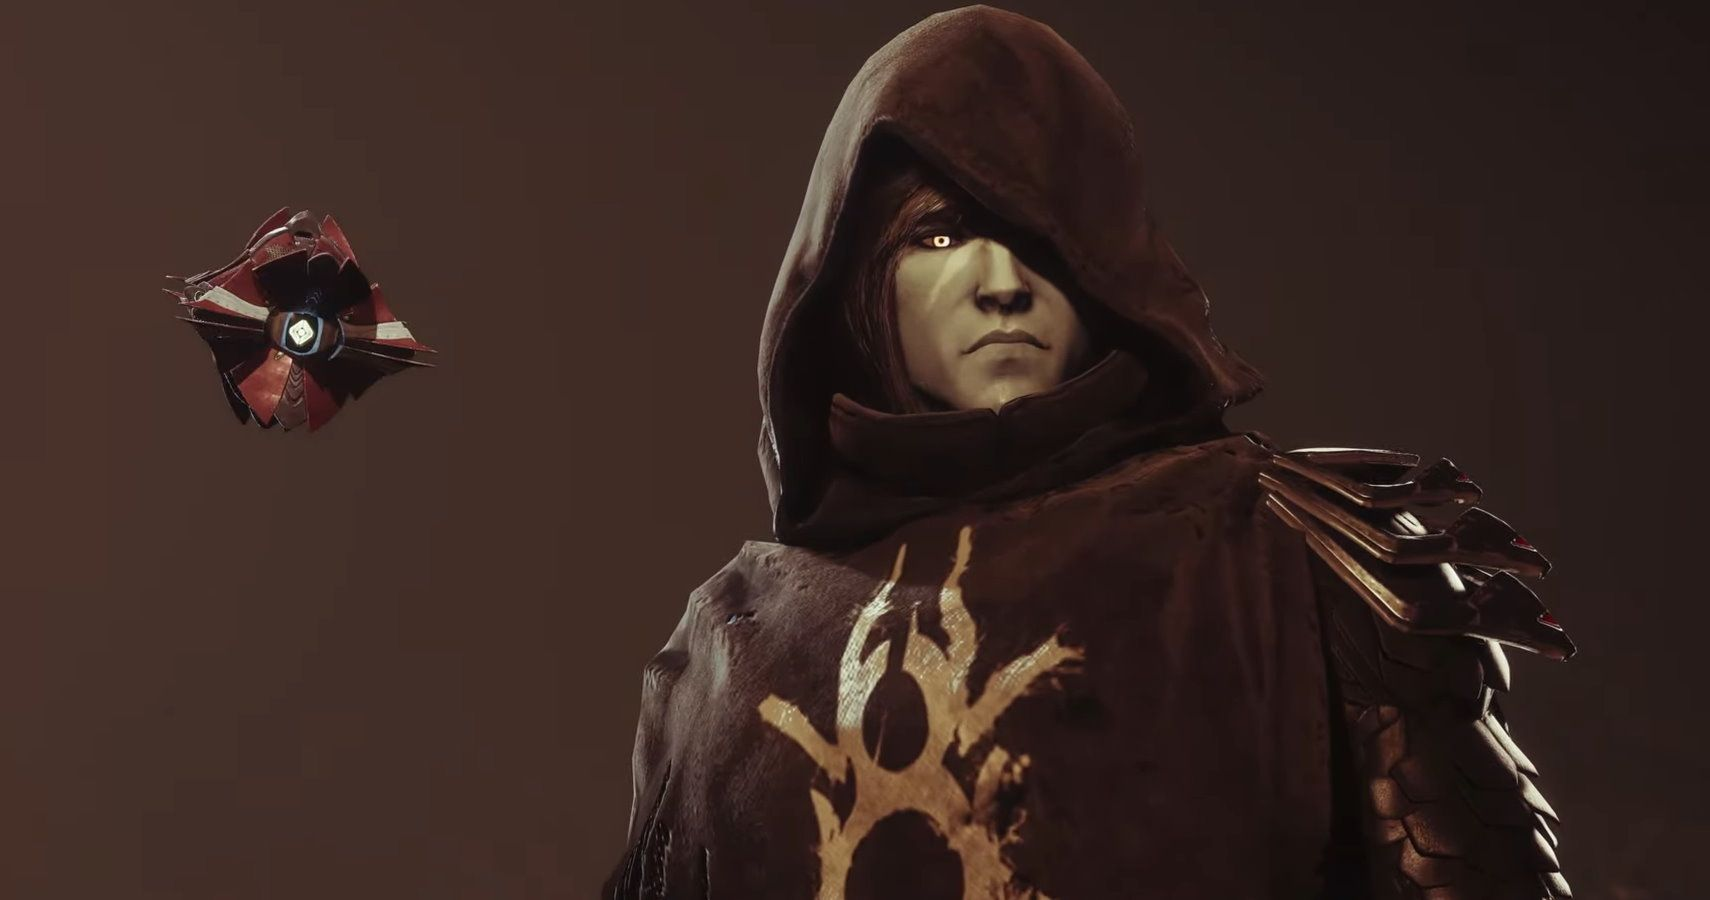 Destiny 2's Next Season Has You Track Down Hive With The Help Of Uldren Sov